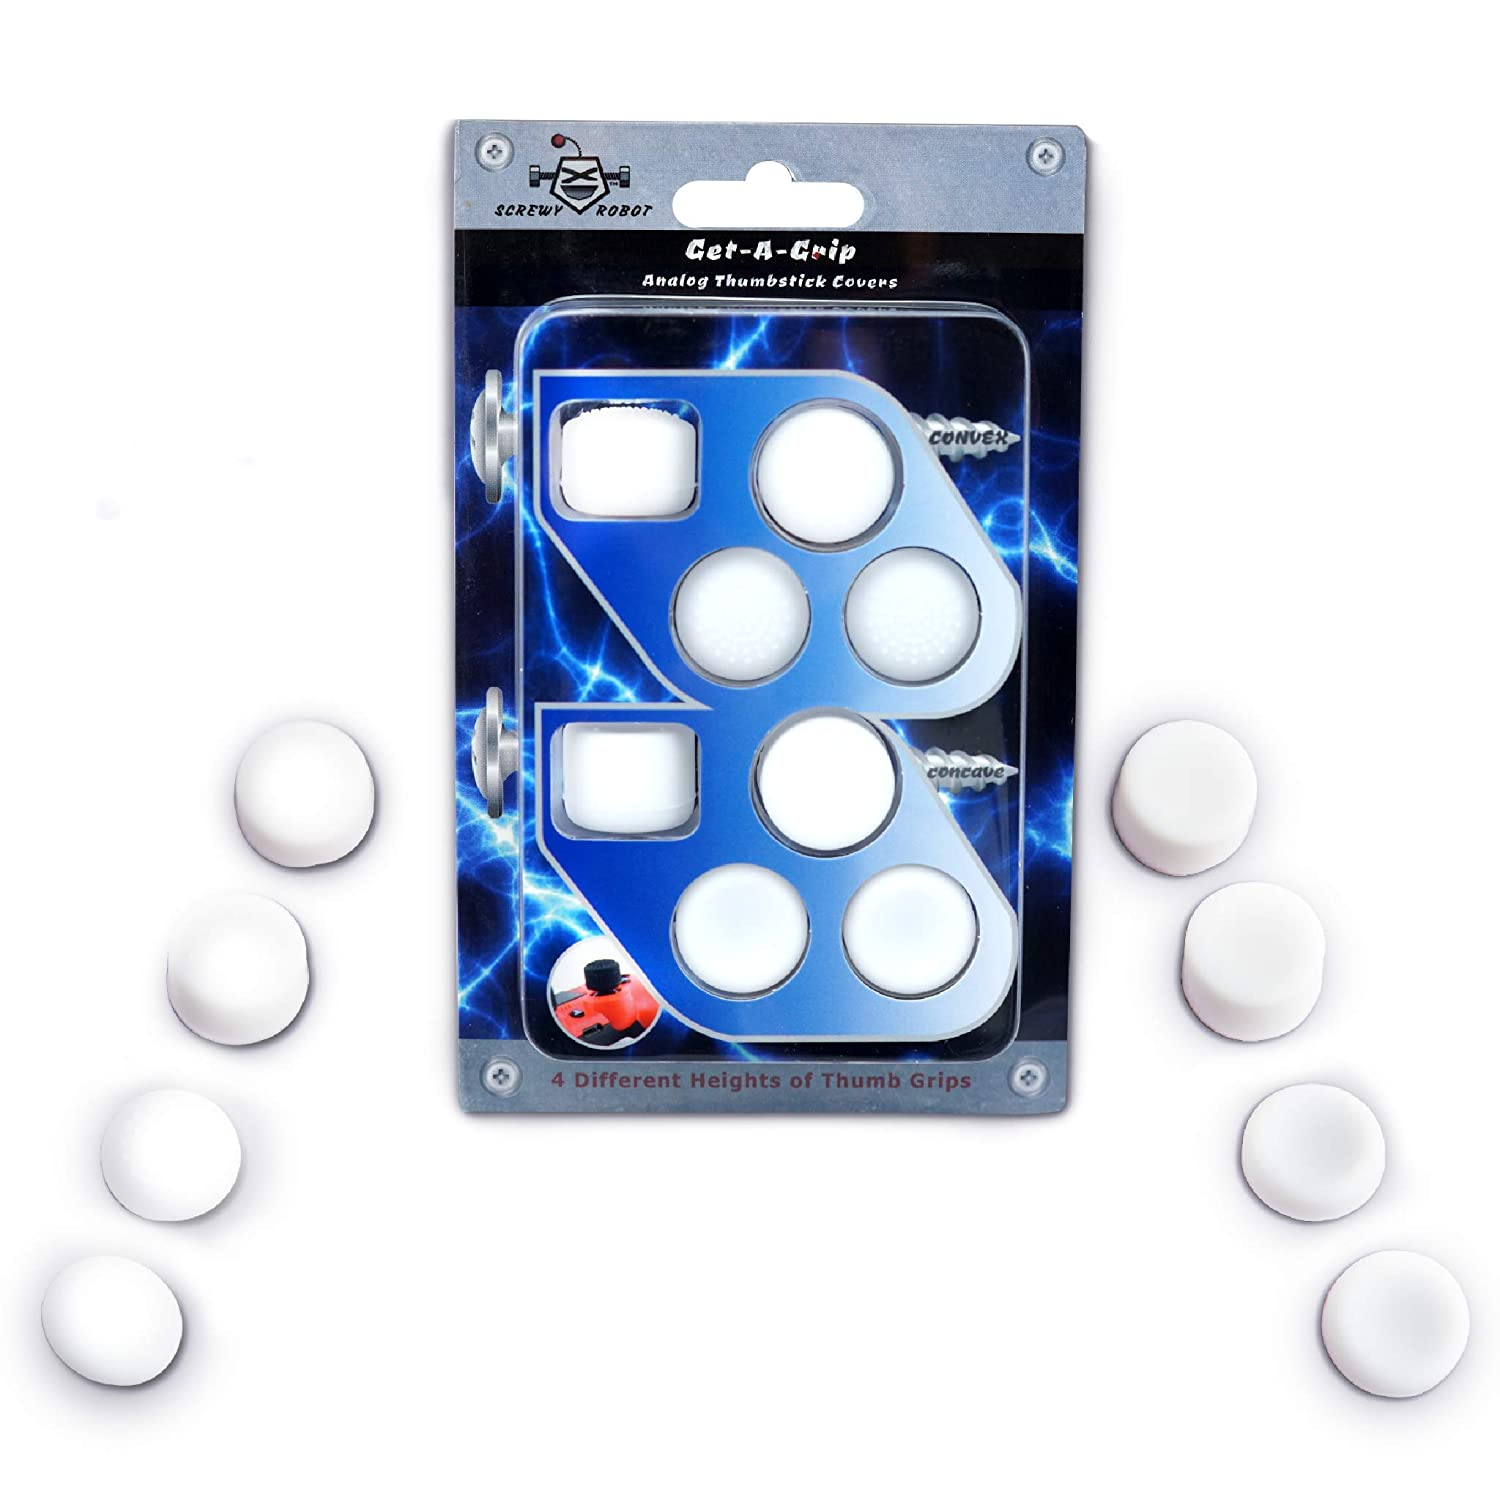 Get-A-Grip Analog Thumbstick Grip Covers for PS4/PS3 by ScrewyRobot (White)